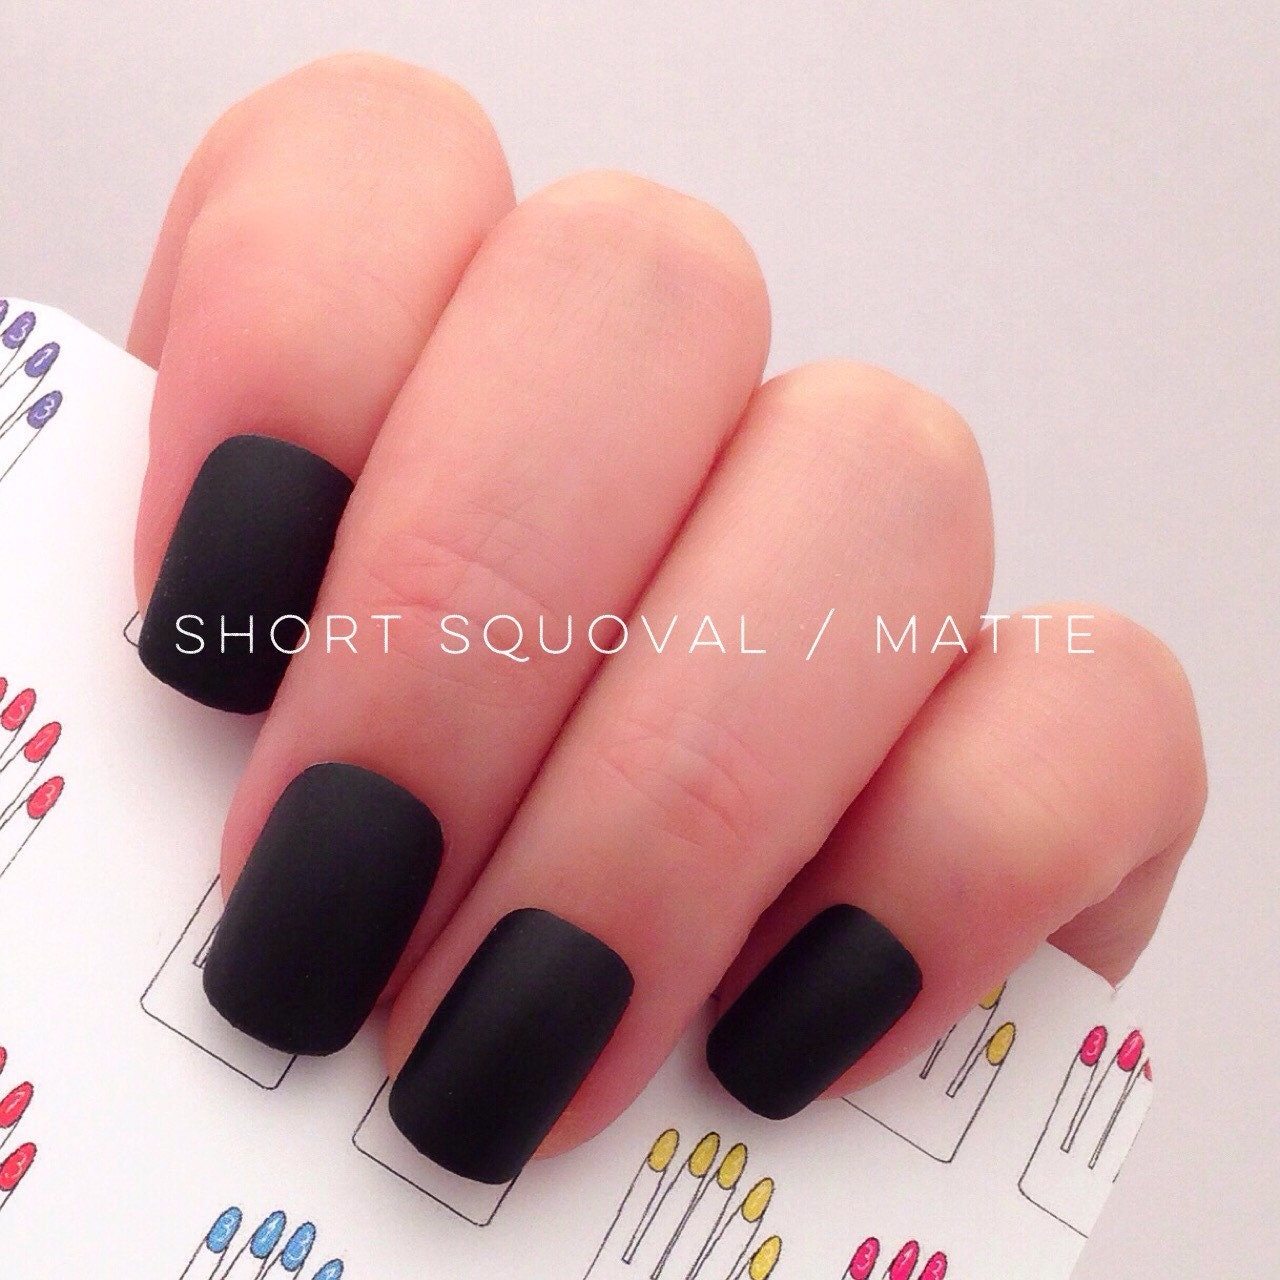 Short squoval acrylic nails – Great photo blog about manicure 2017